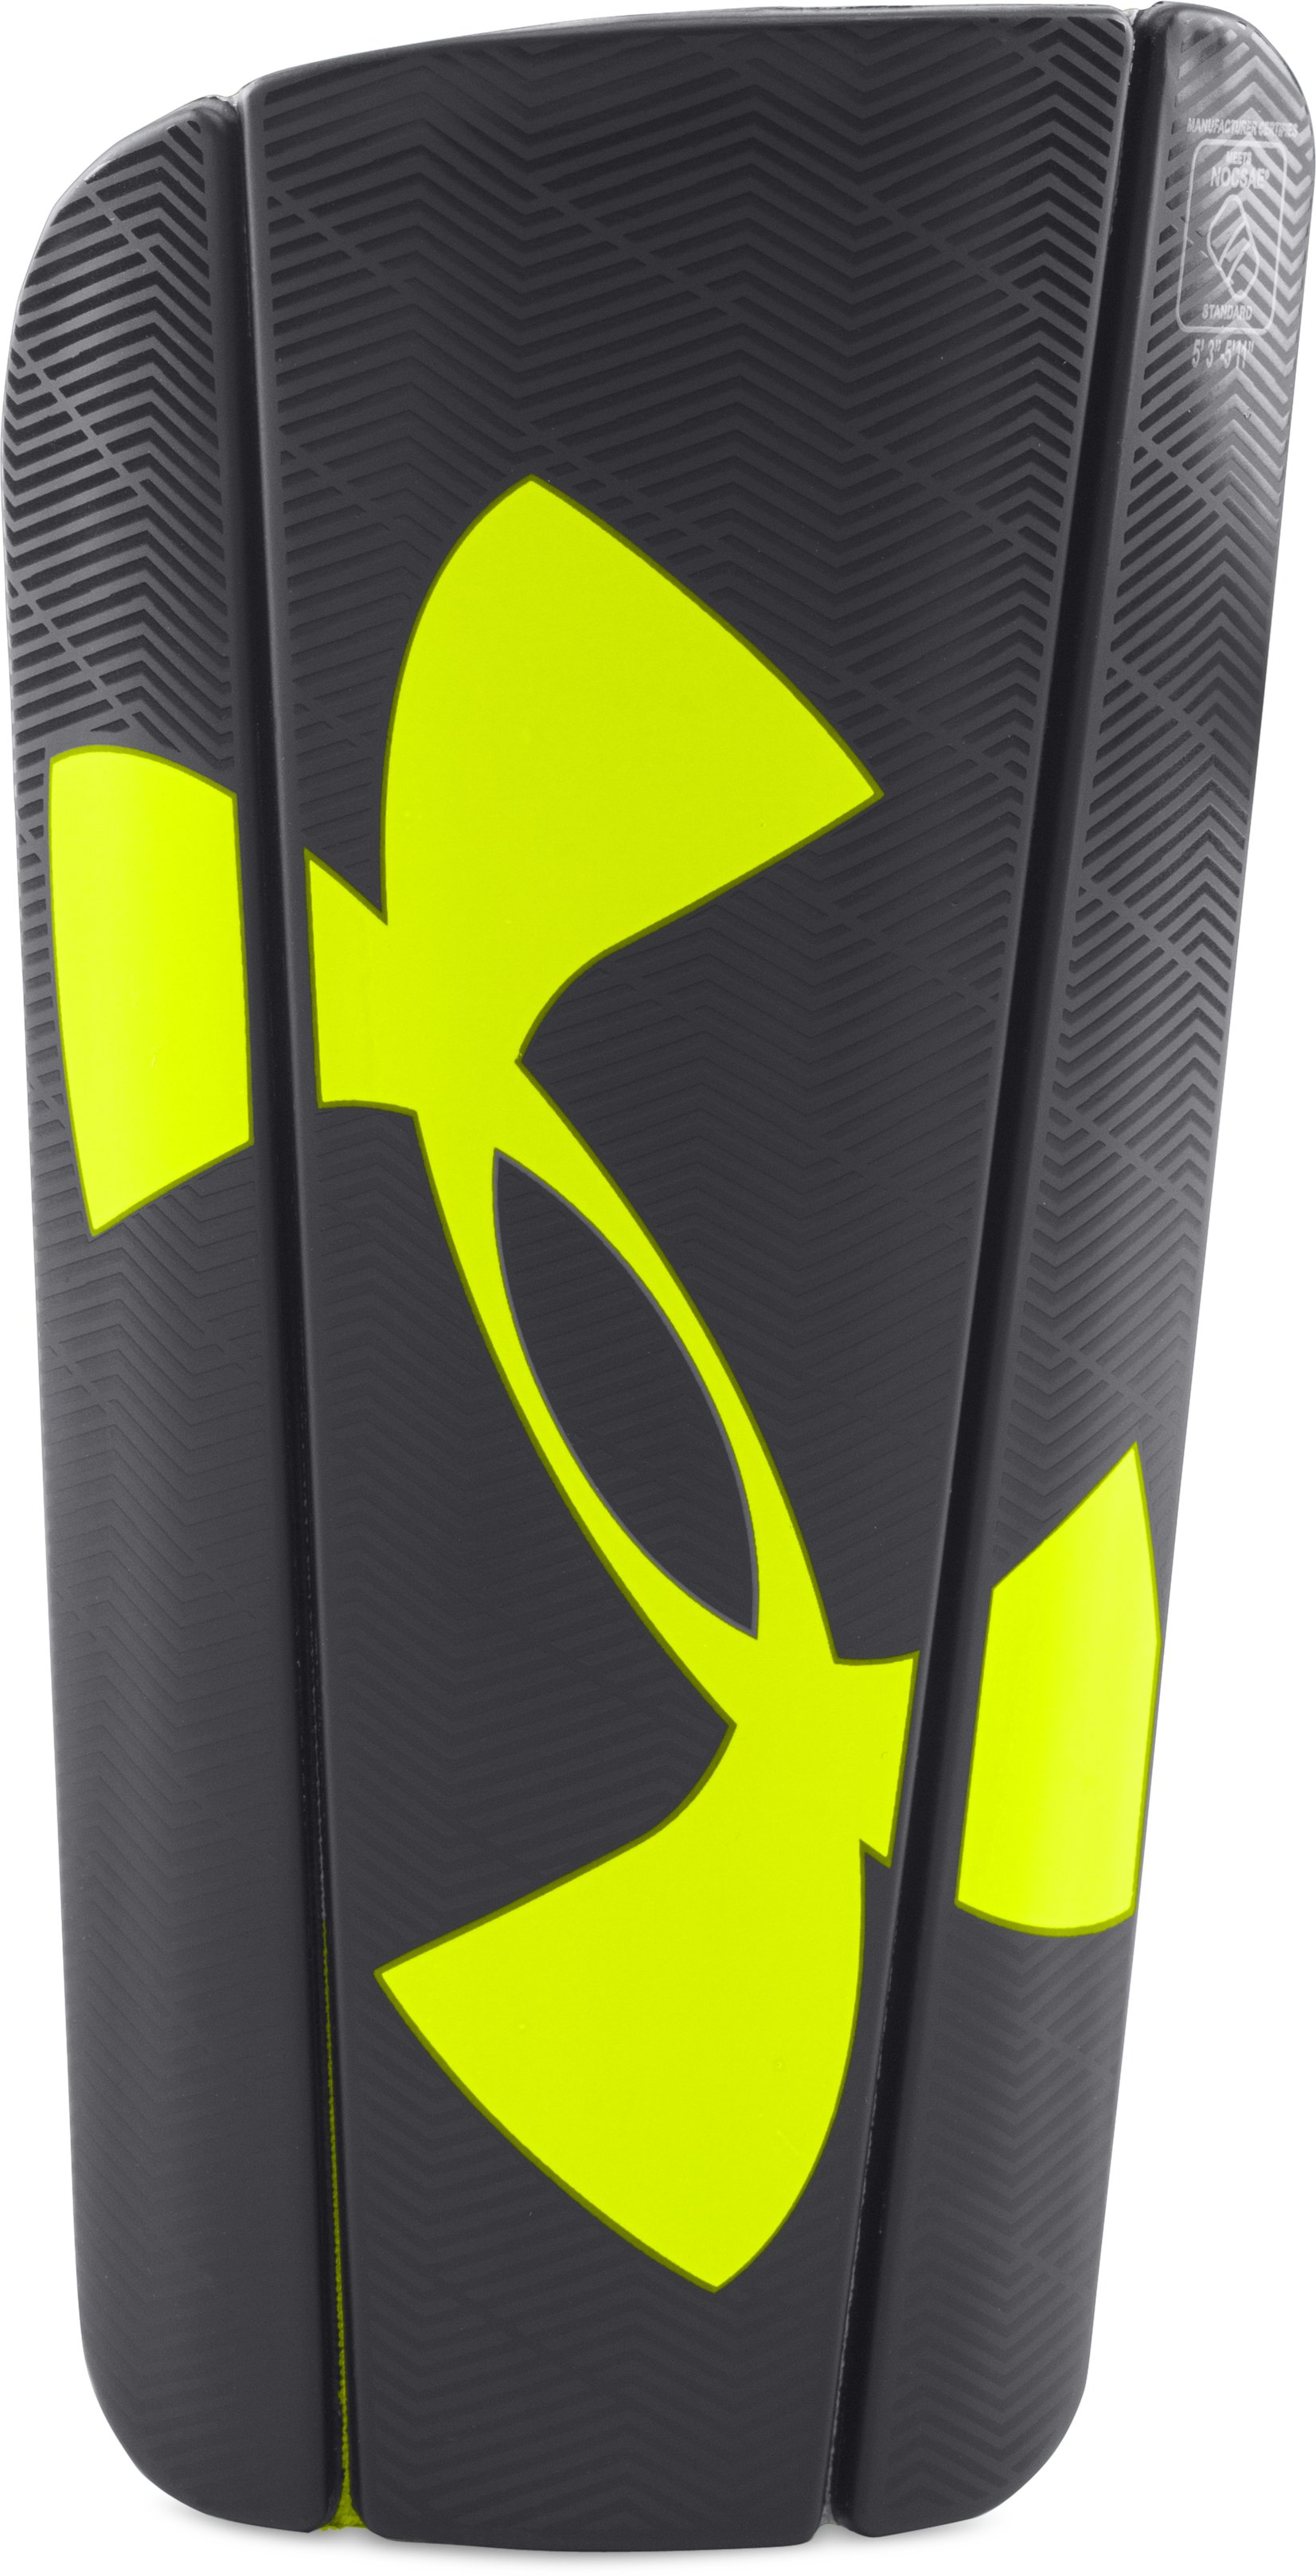 UA Spine Shin Guard, Black